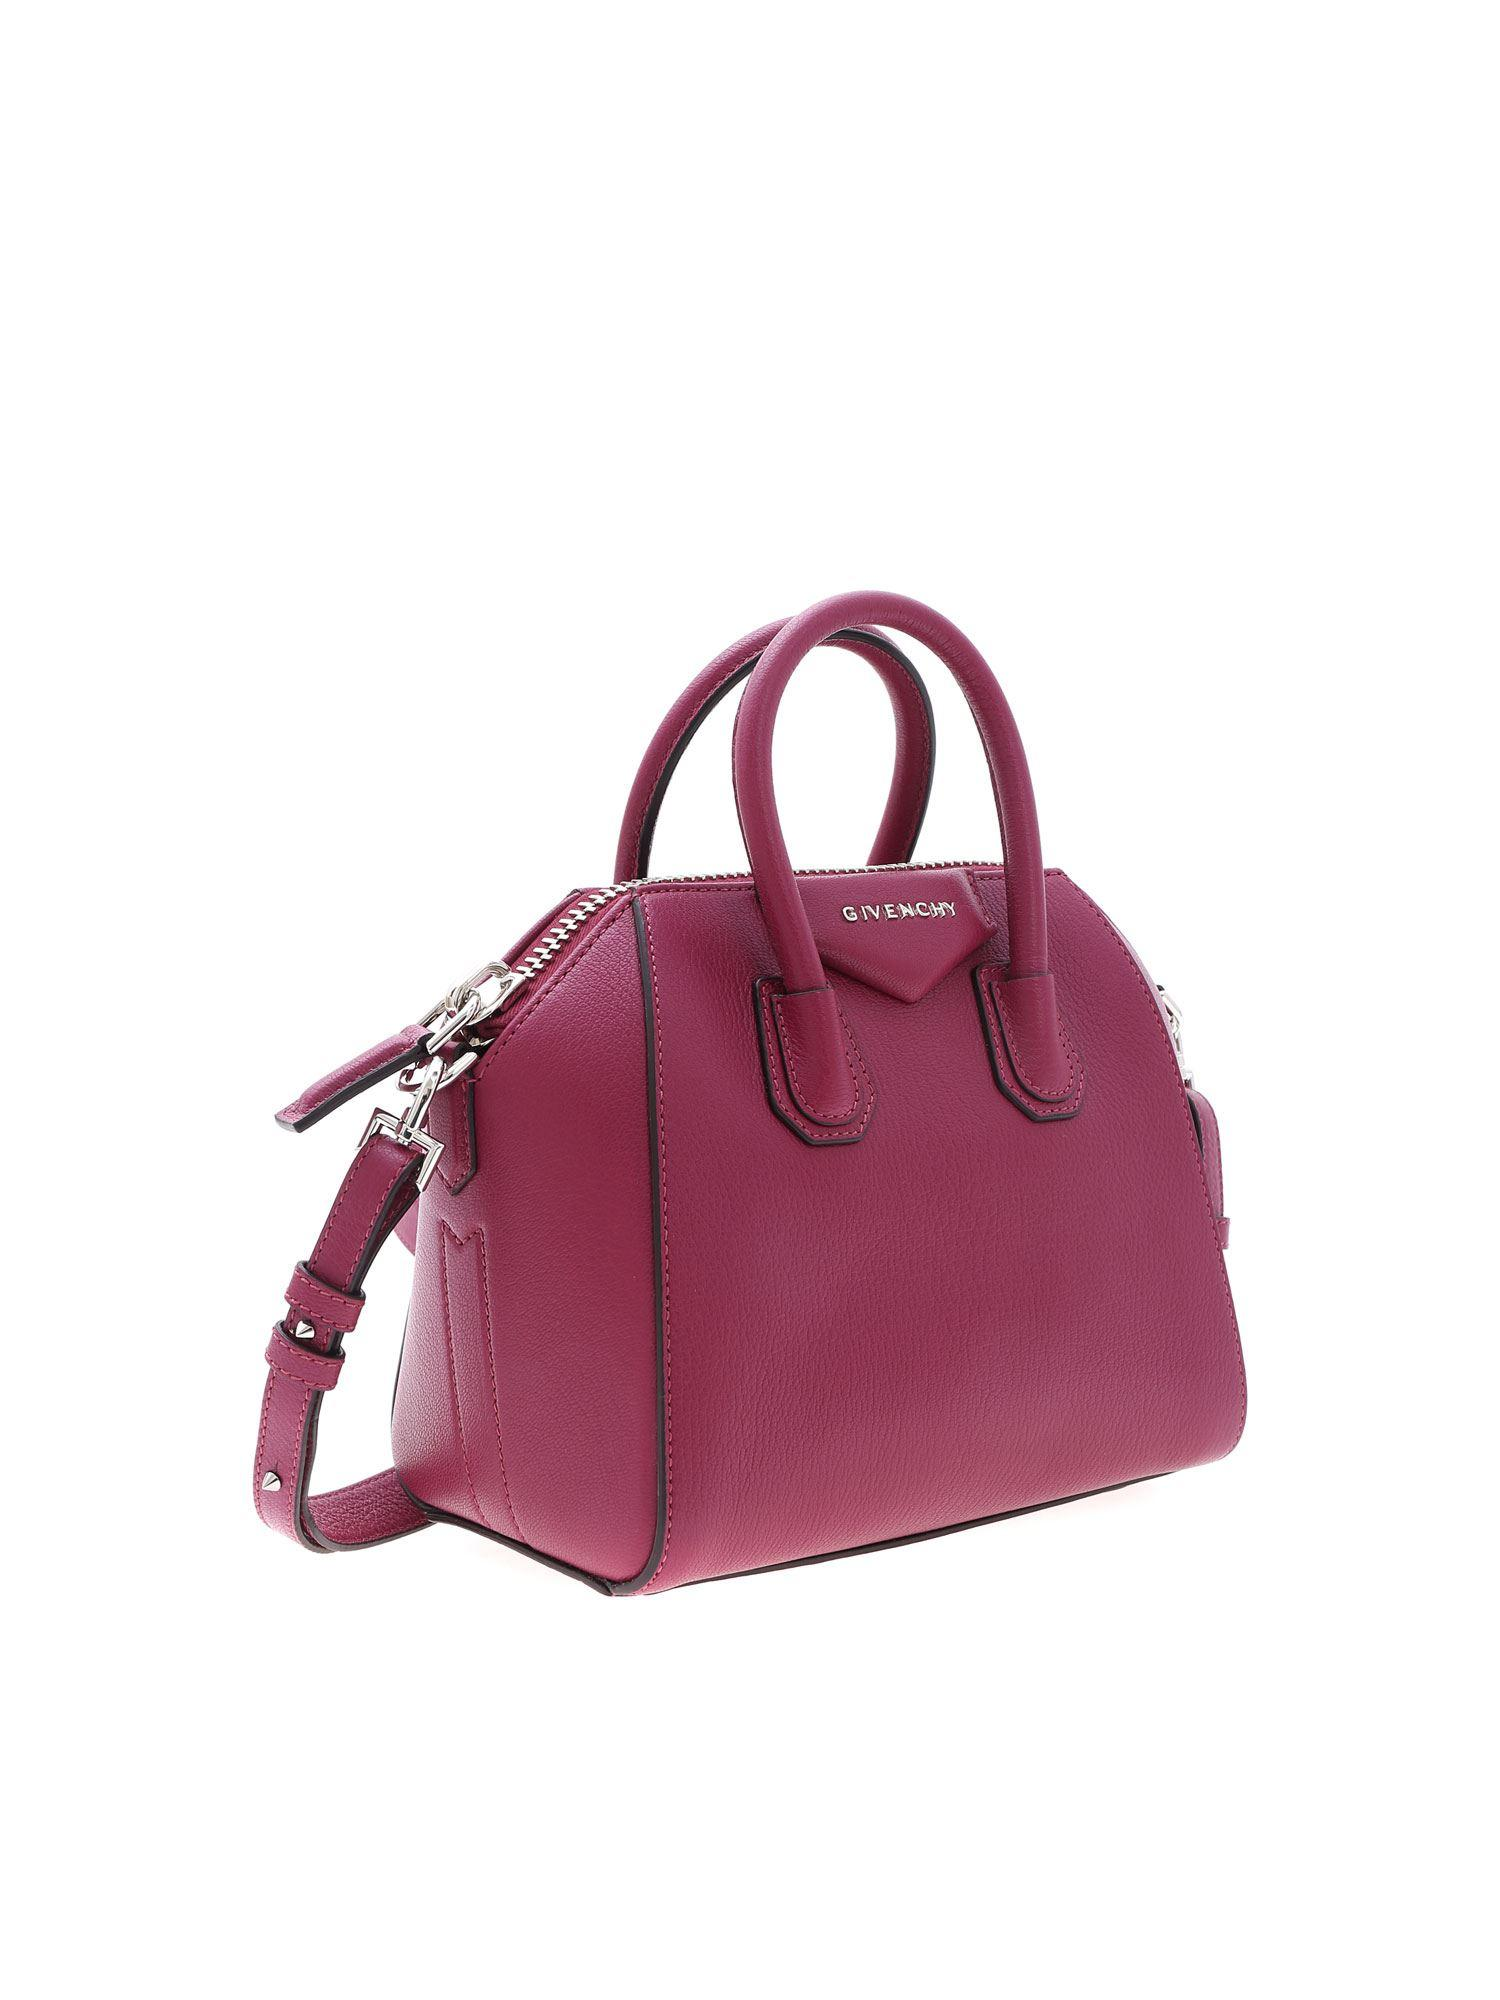 b154741cfe Givenchy Antigona Mini Bag In Wine-colored Leather in Purple - Lyst